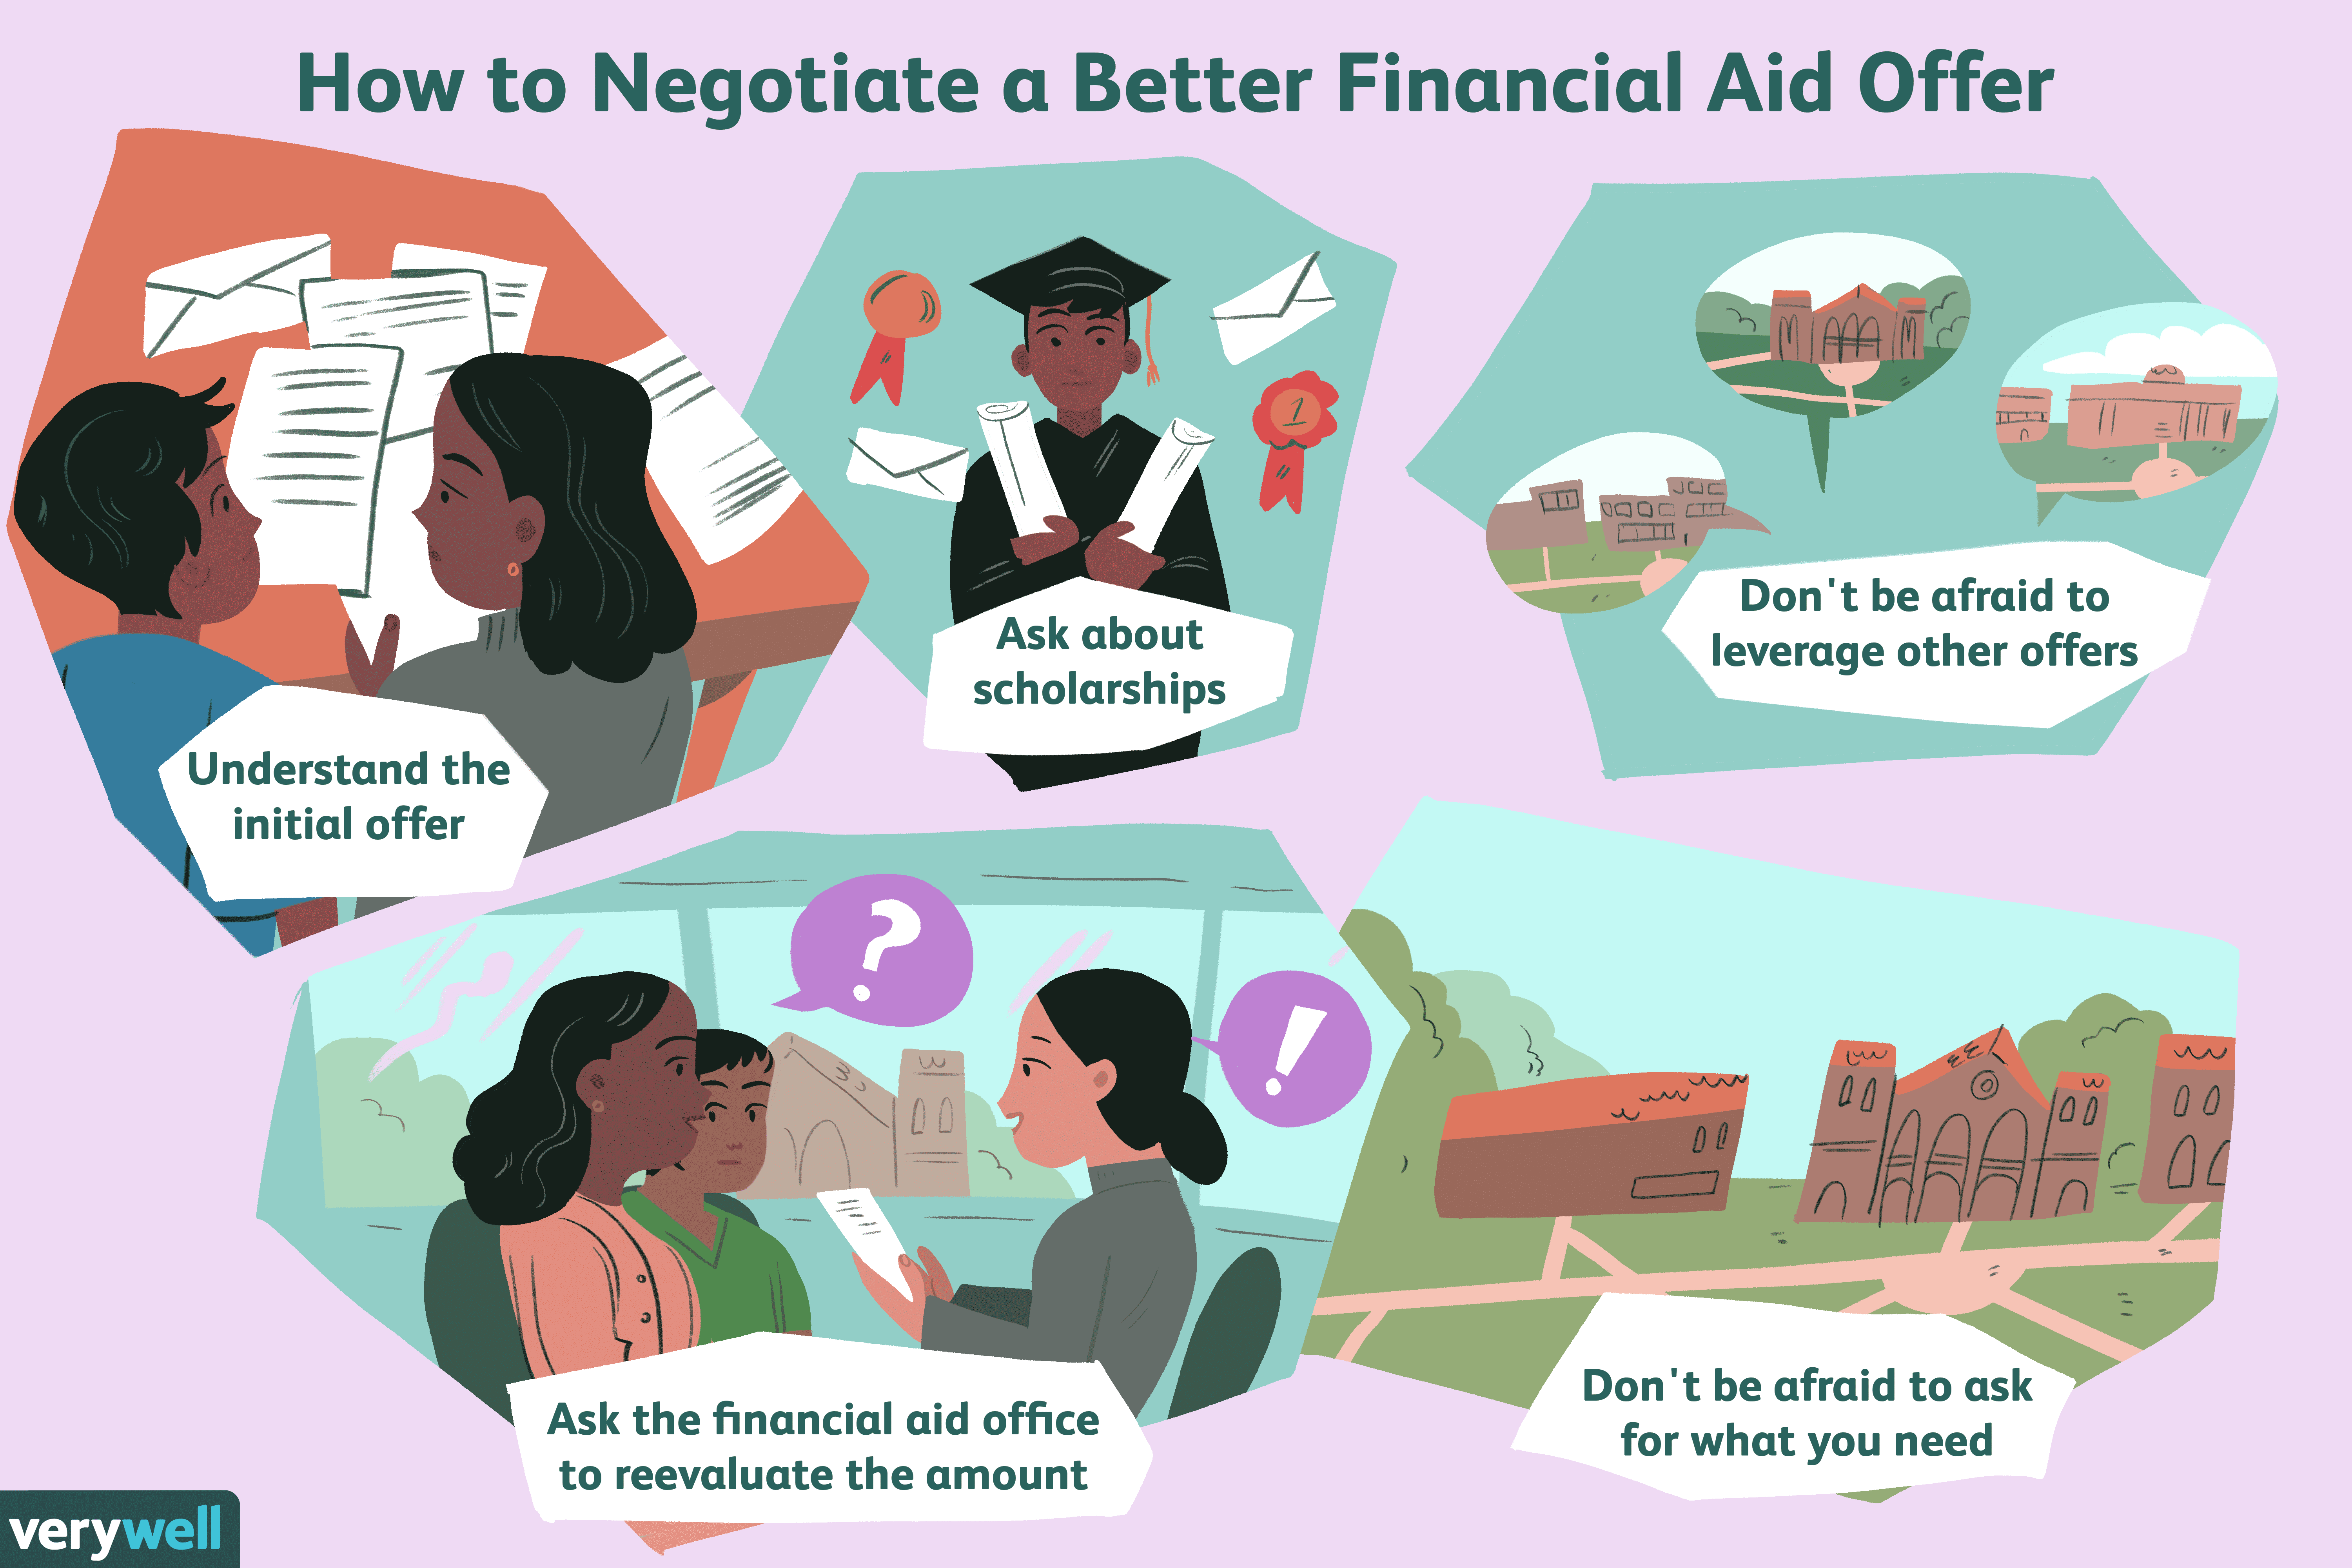 How to negotiate a better financial aid offer